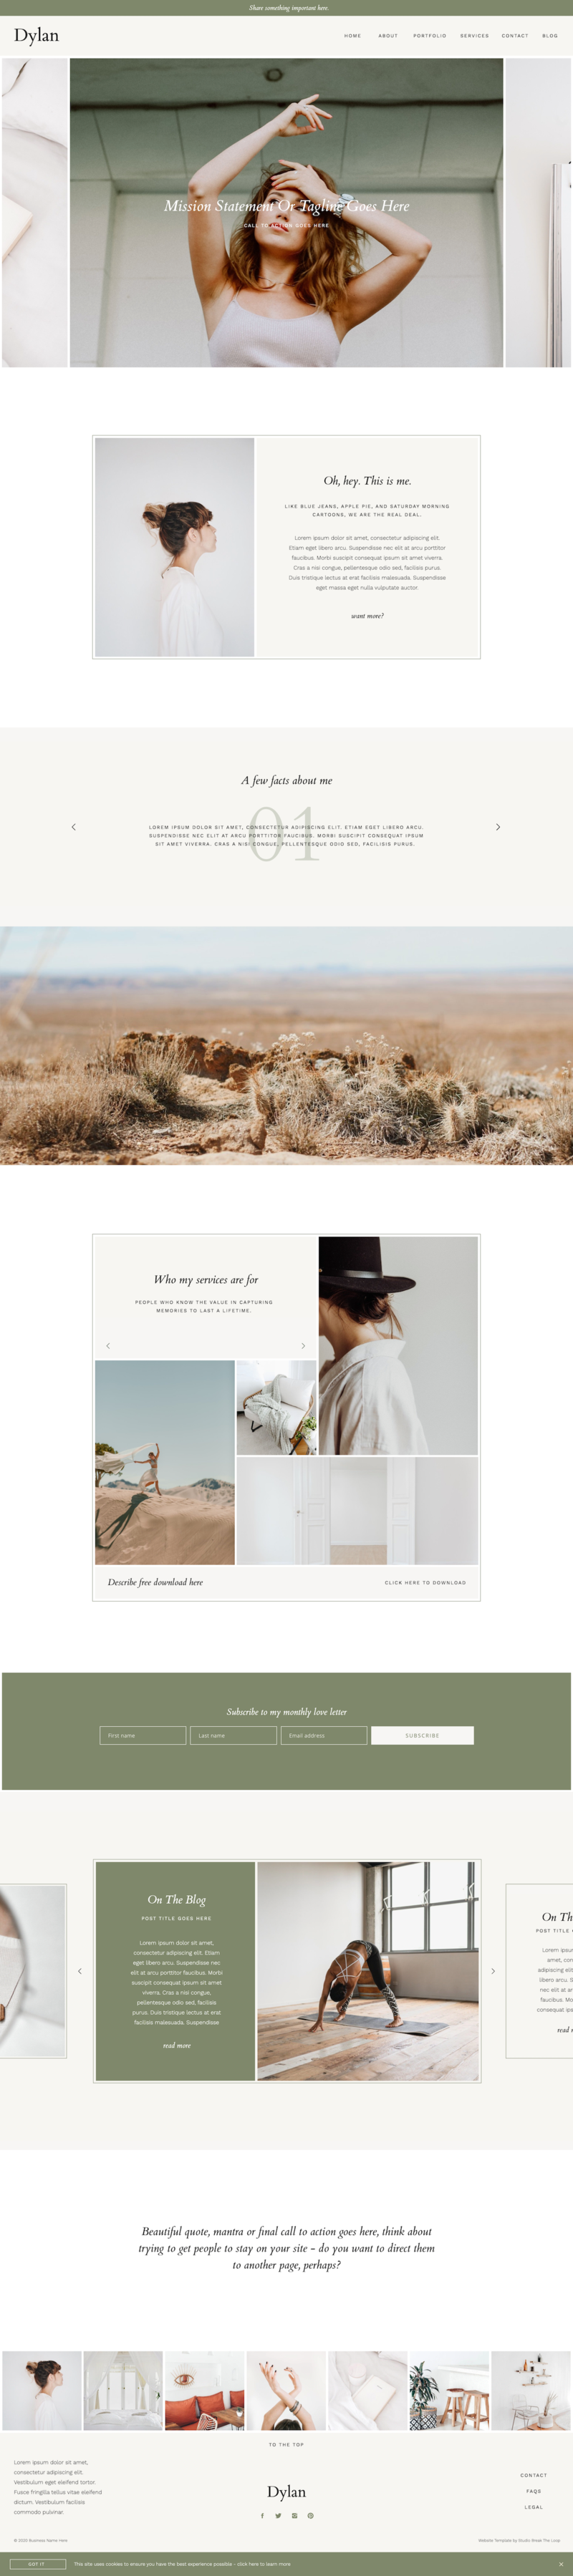 dylan-showit-website-template-homepage